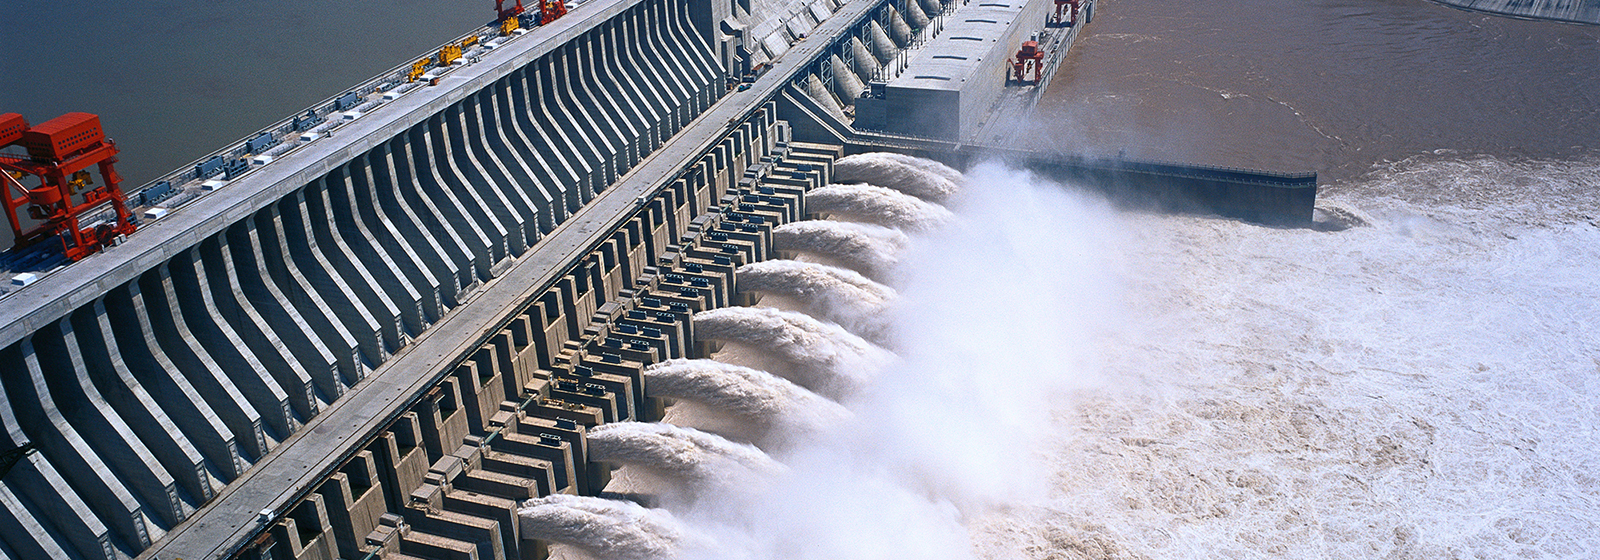 Three gorges dam project china s biggest project since the great wall - Three Gorges Dam Project China S Biggest Project Since The Great Wall 10